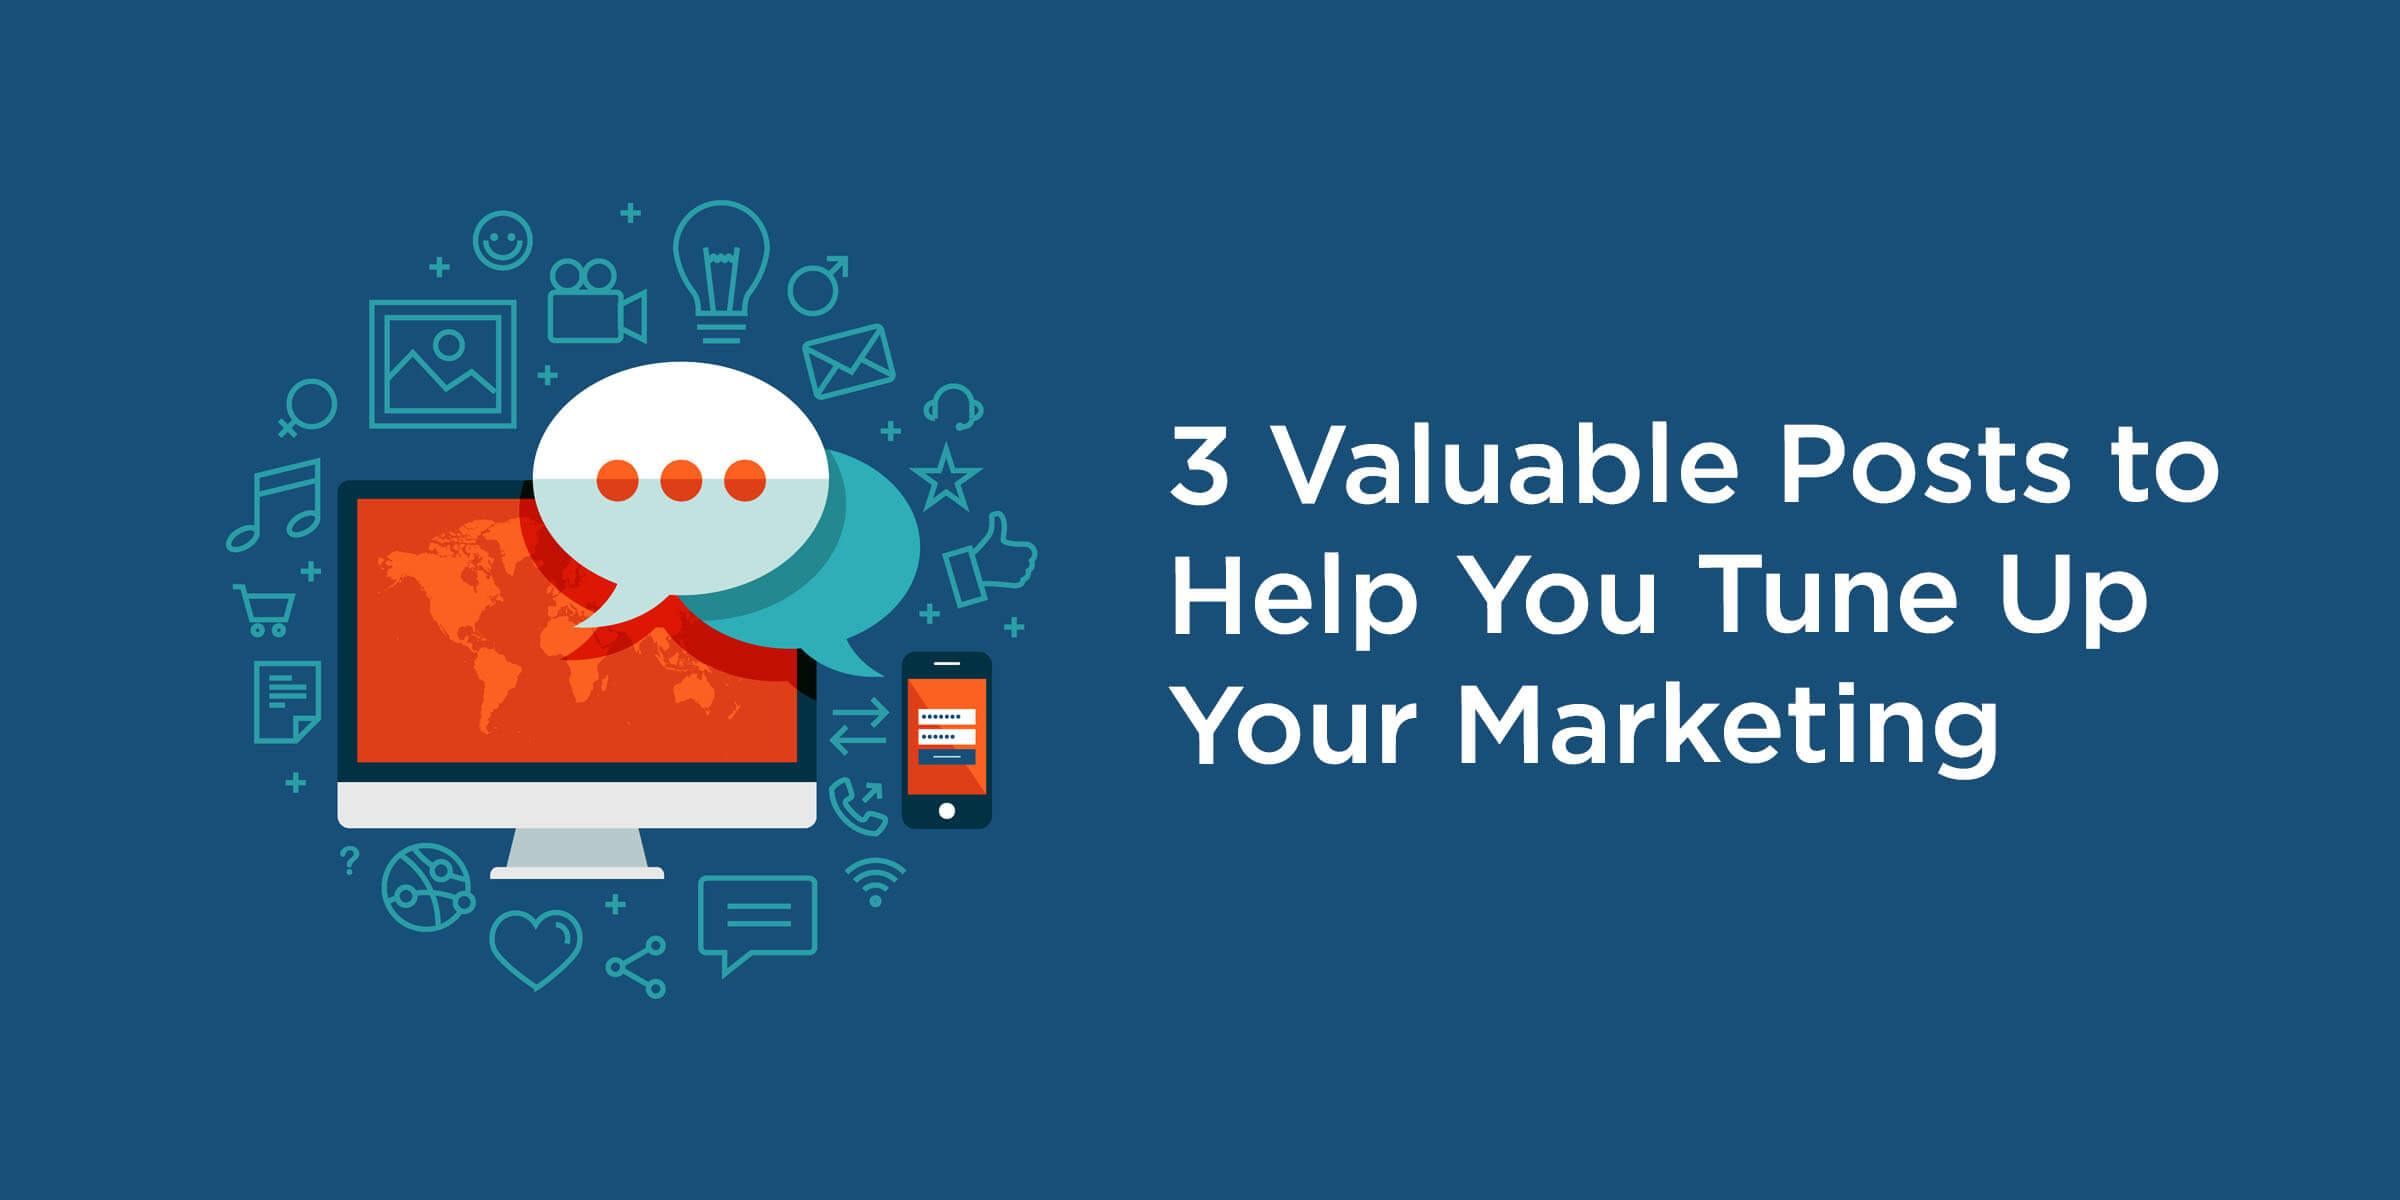 3 Valuable Posts to Help You Tune Up Your Marketing – McBreen Marketing